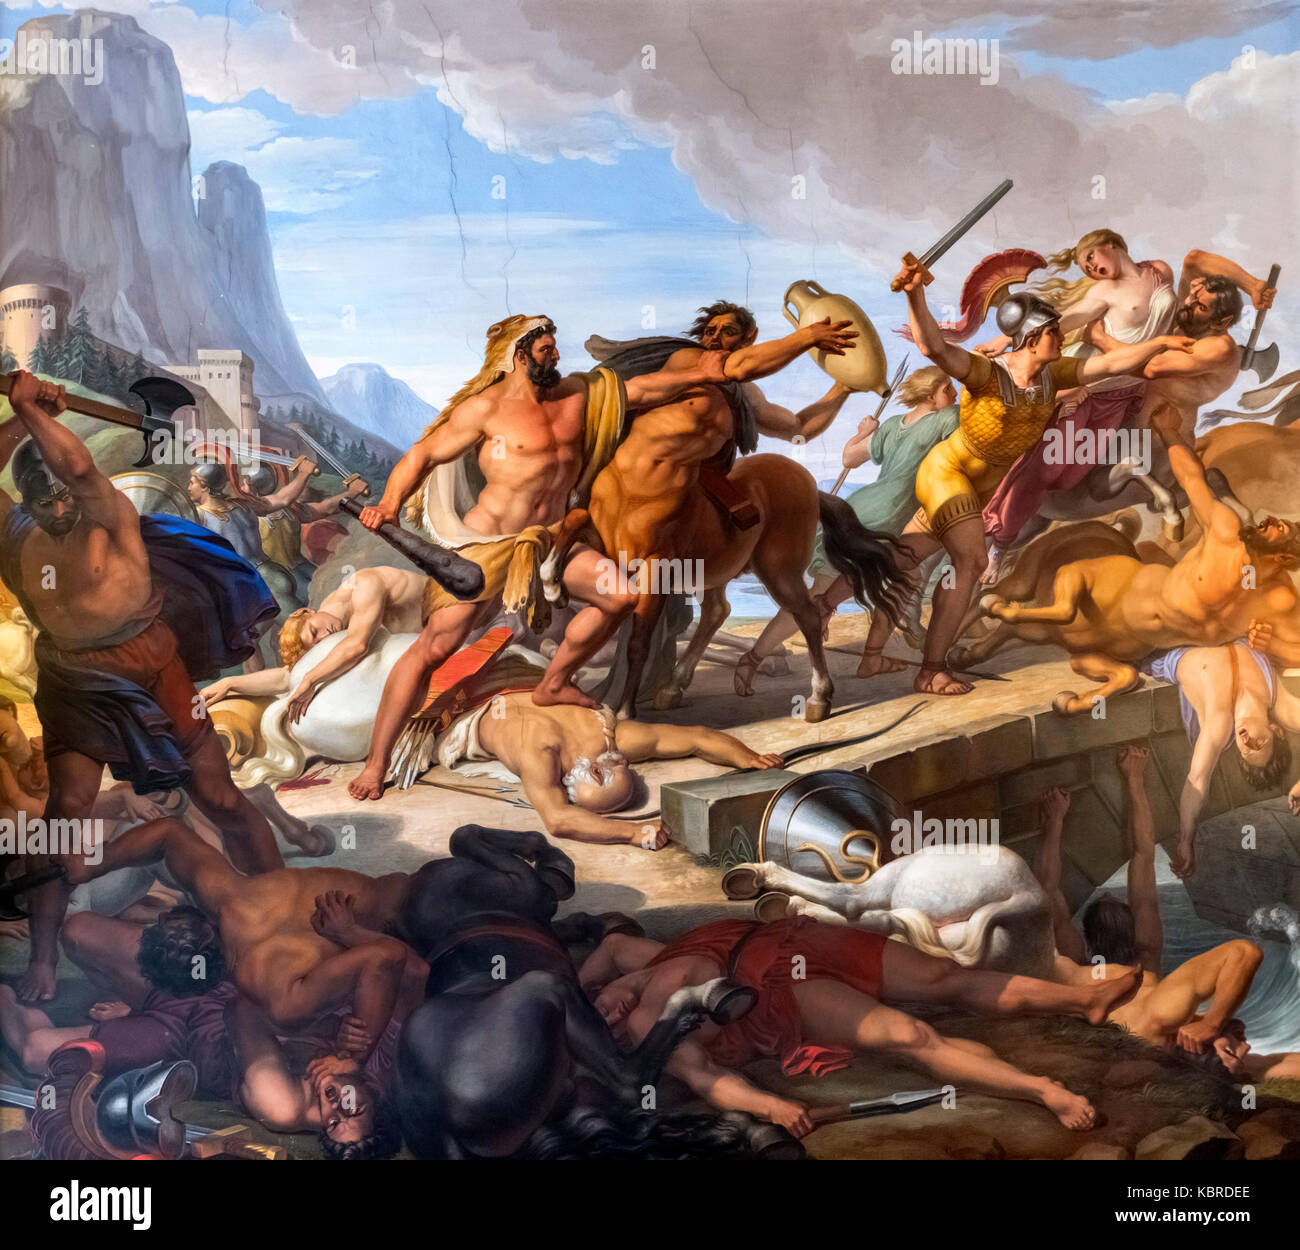 Hercules Fighting the Centaurs by Pietro Benvenuti (1769-1844), c.1817-1829 - Stock Image